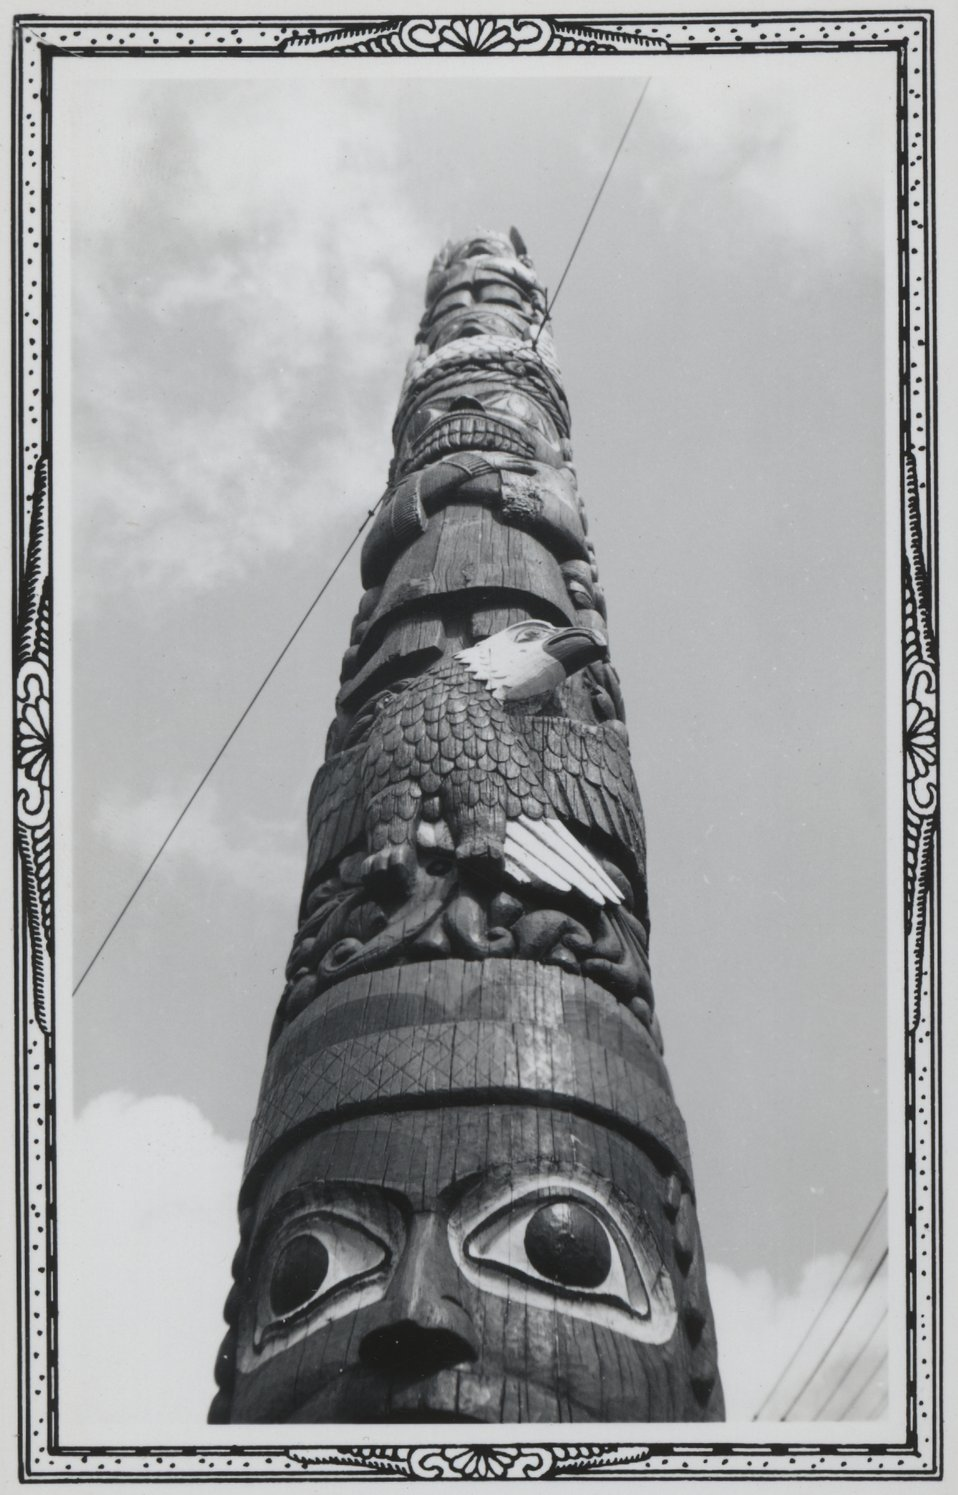 A beautiful totem pole at Ketchikan.